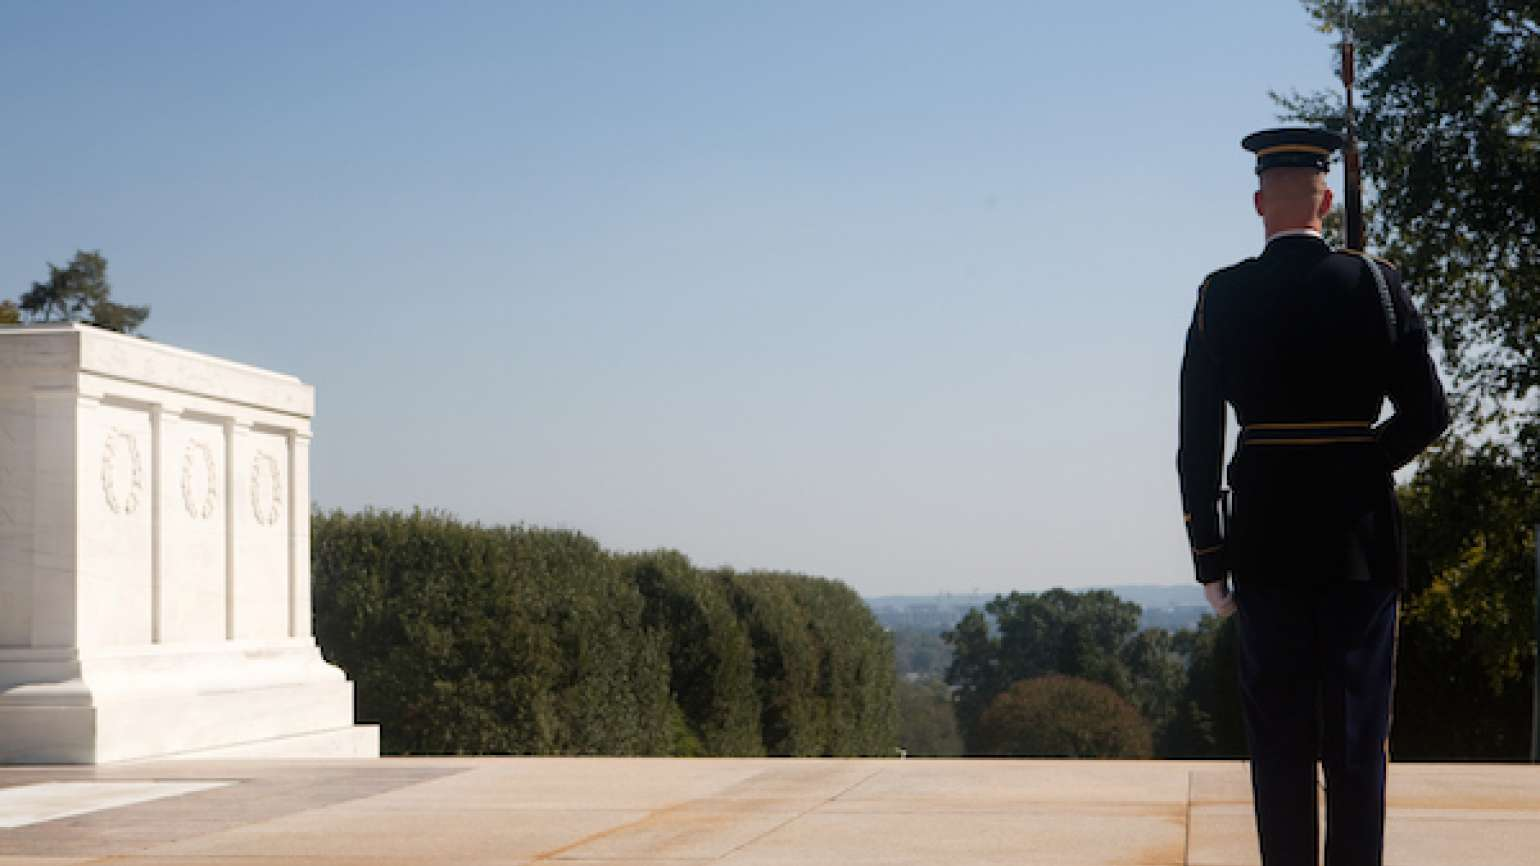 The Tomb of the Unknown Soldier at Arlington National Cemetery.